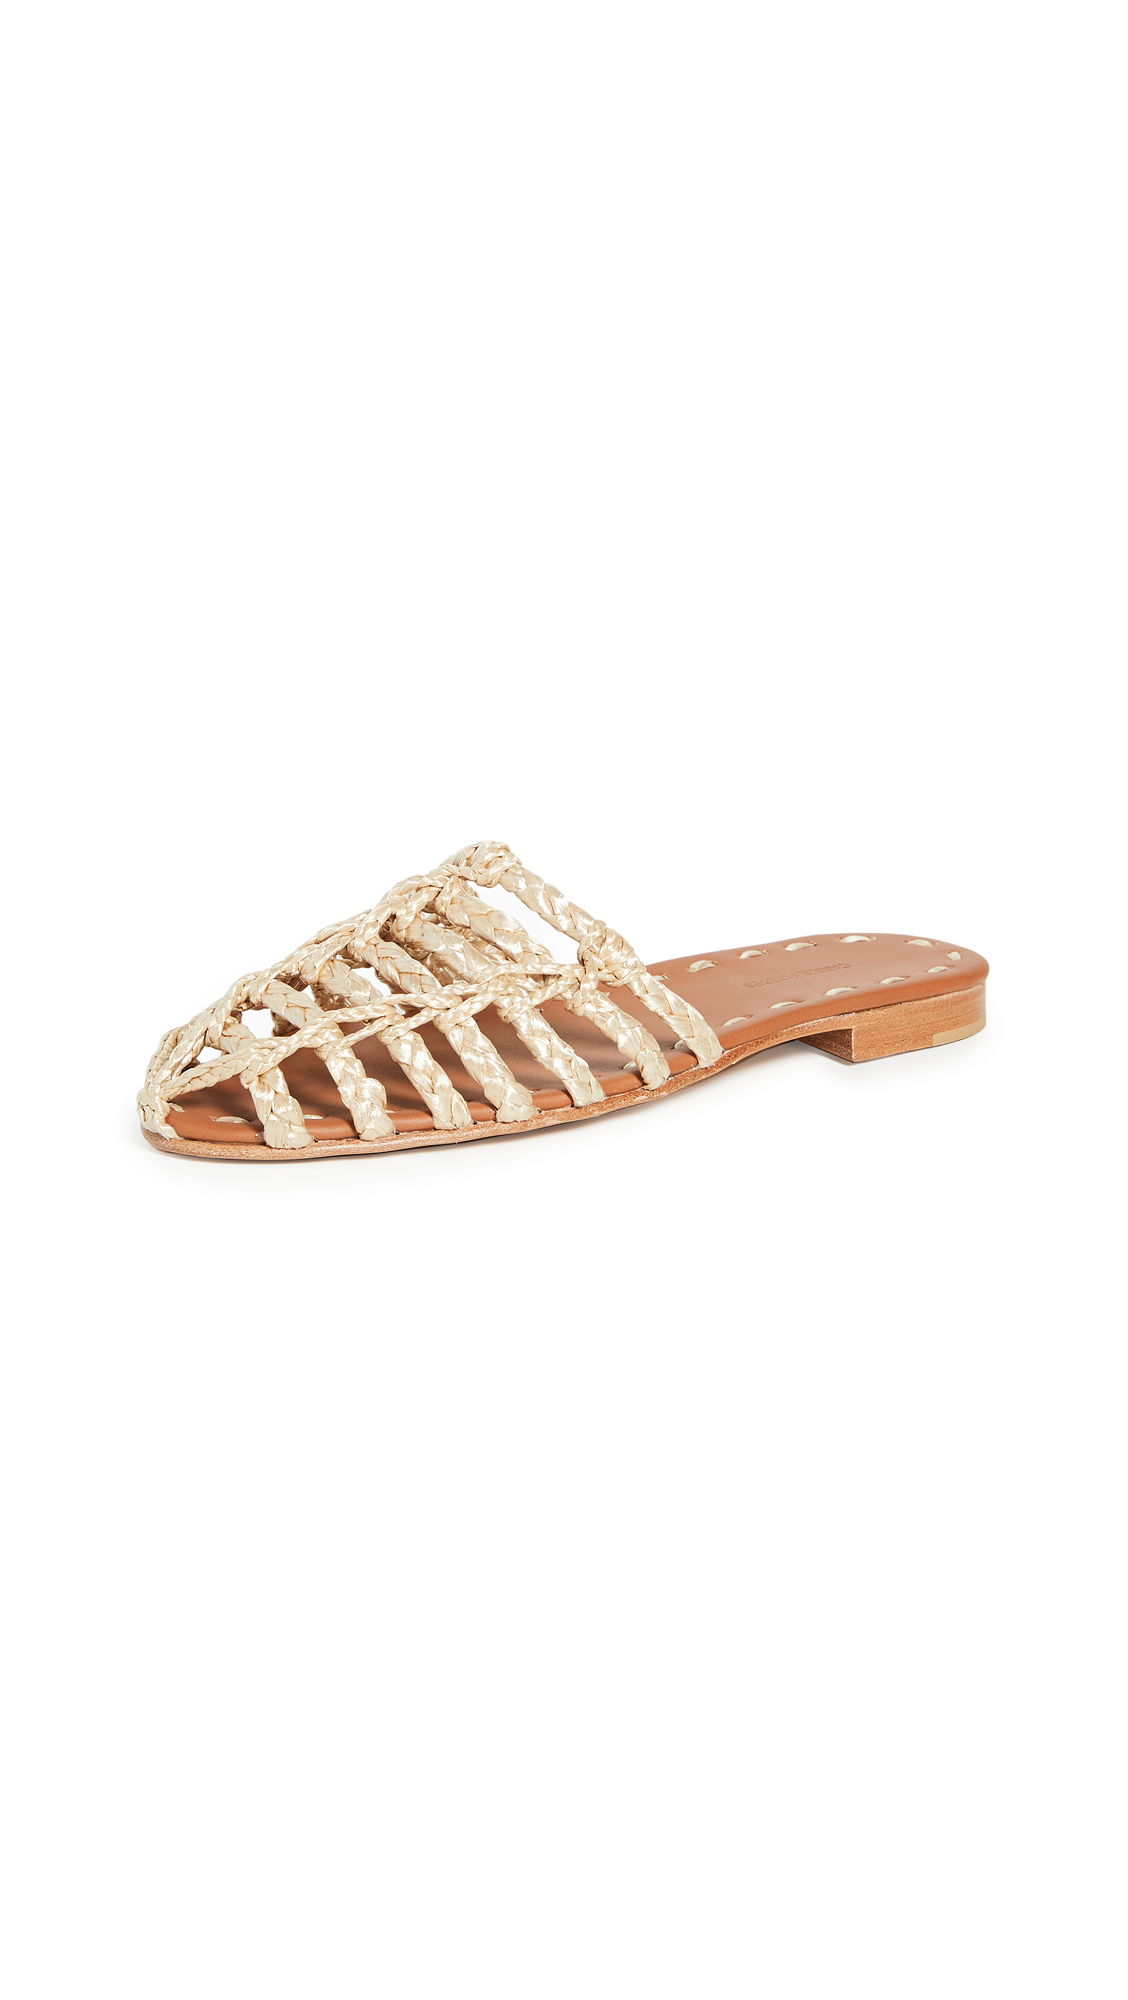 Buy Carrie Forbes Rashida Flat Mules online, shop Carrie Forbes